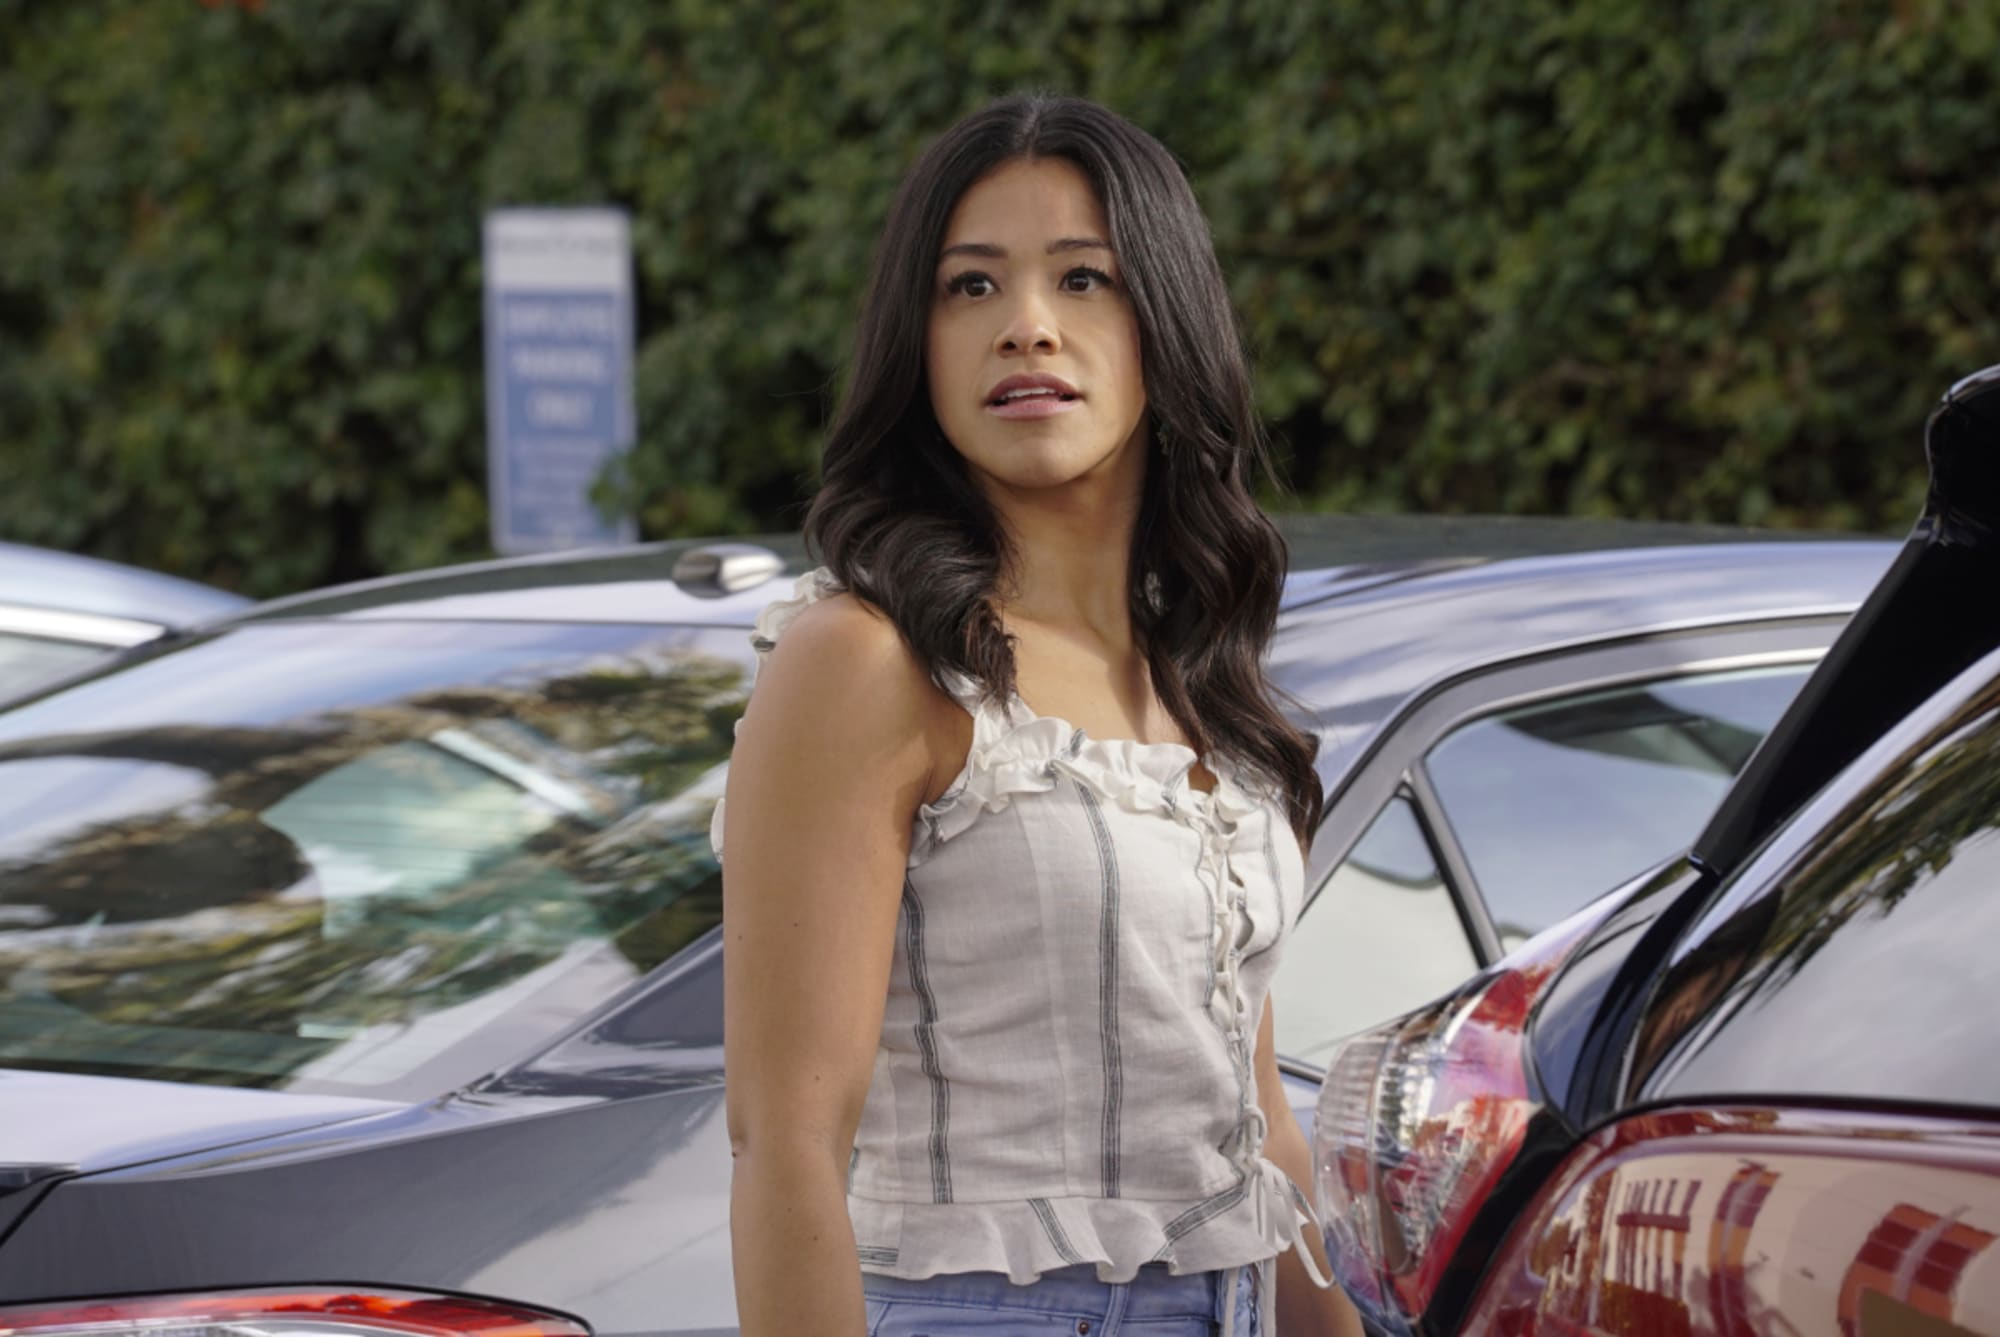 watch jane the virgin season 5 episode 8 online free